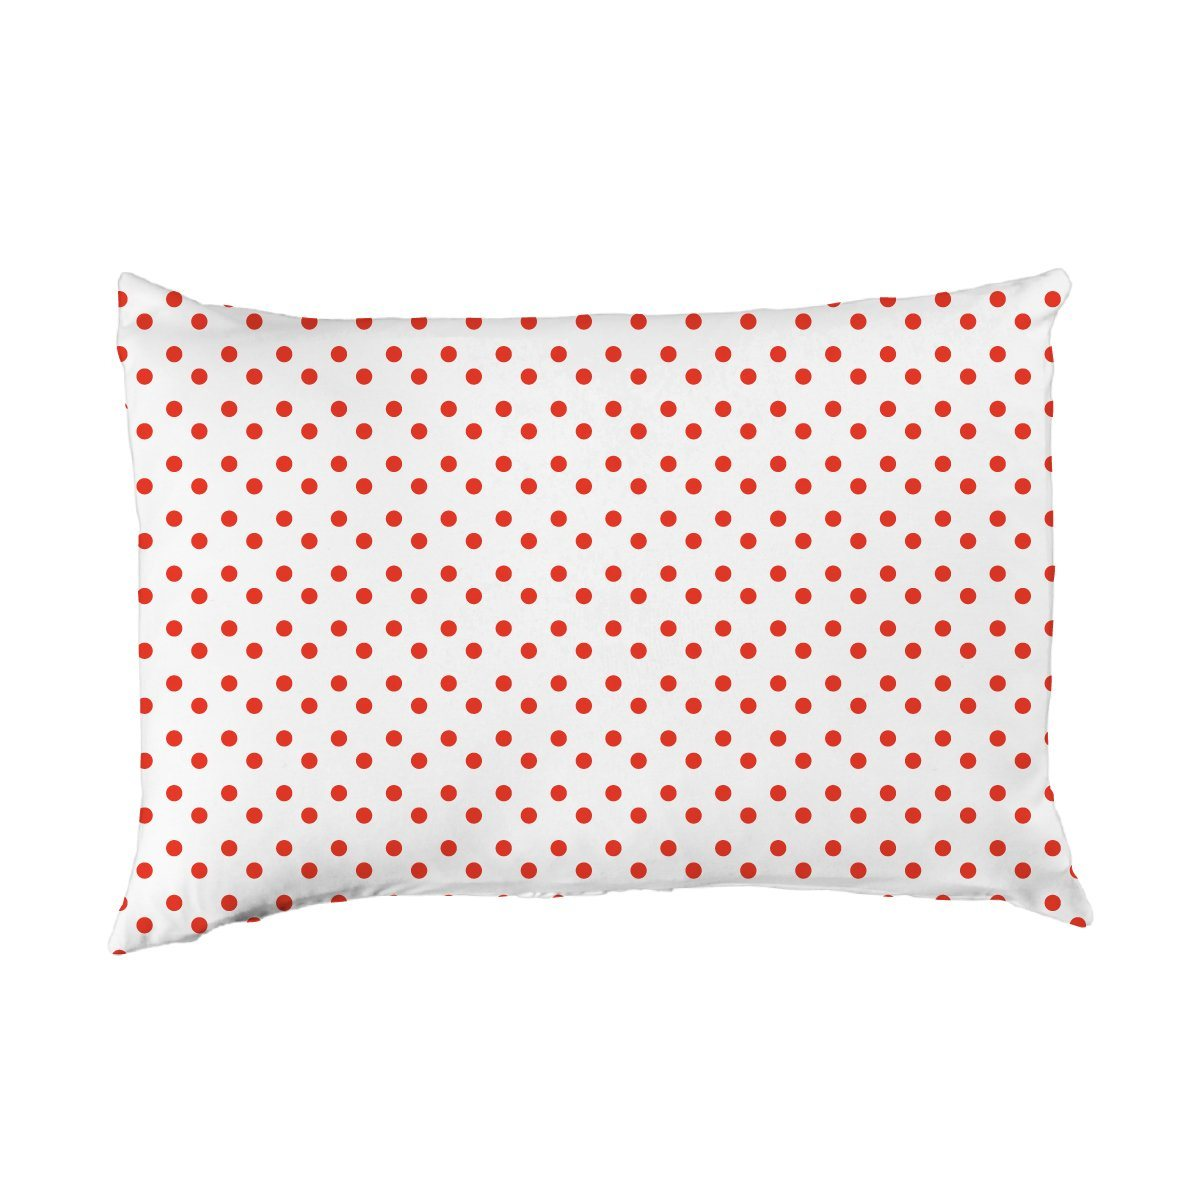 Eleanor's Poppies | Mommy Pillow Case